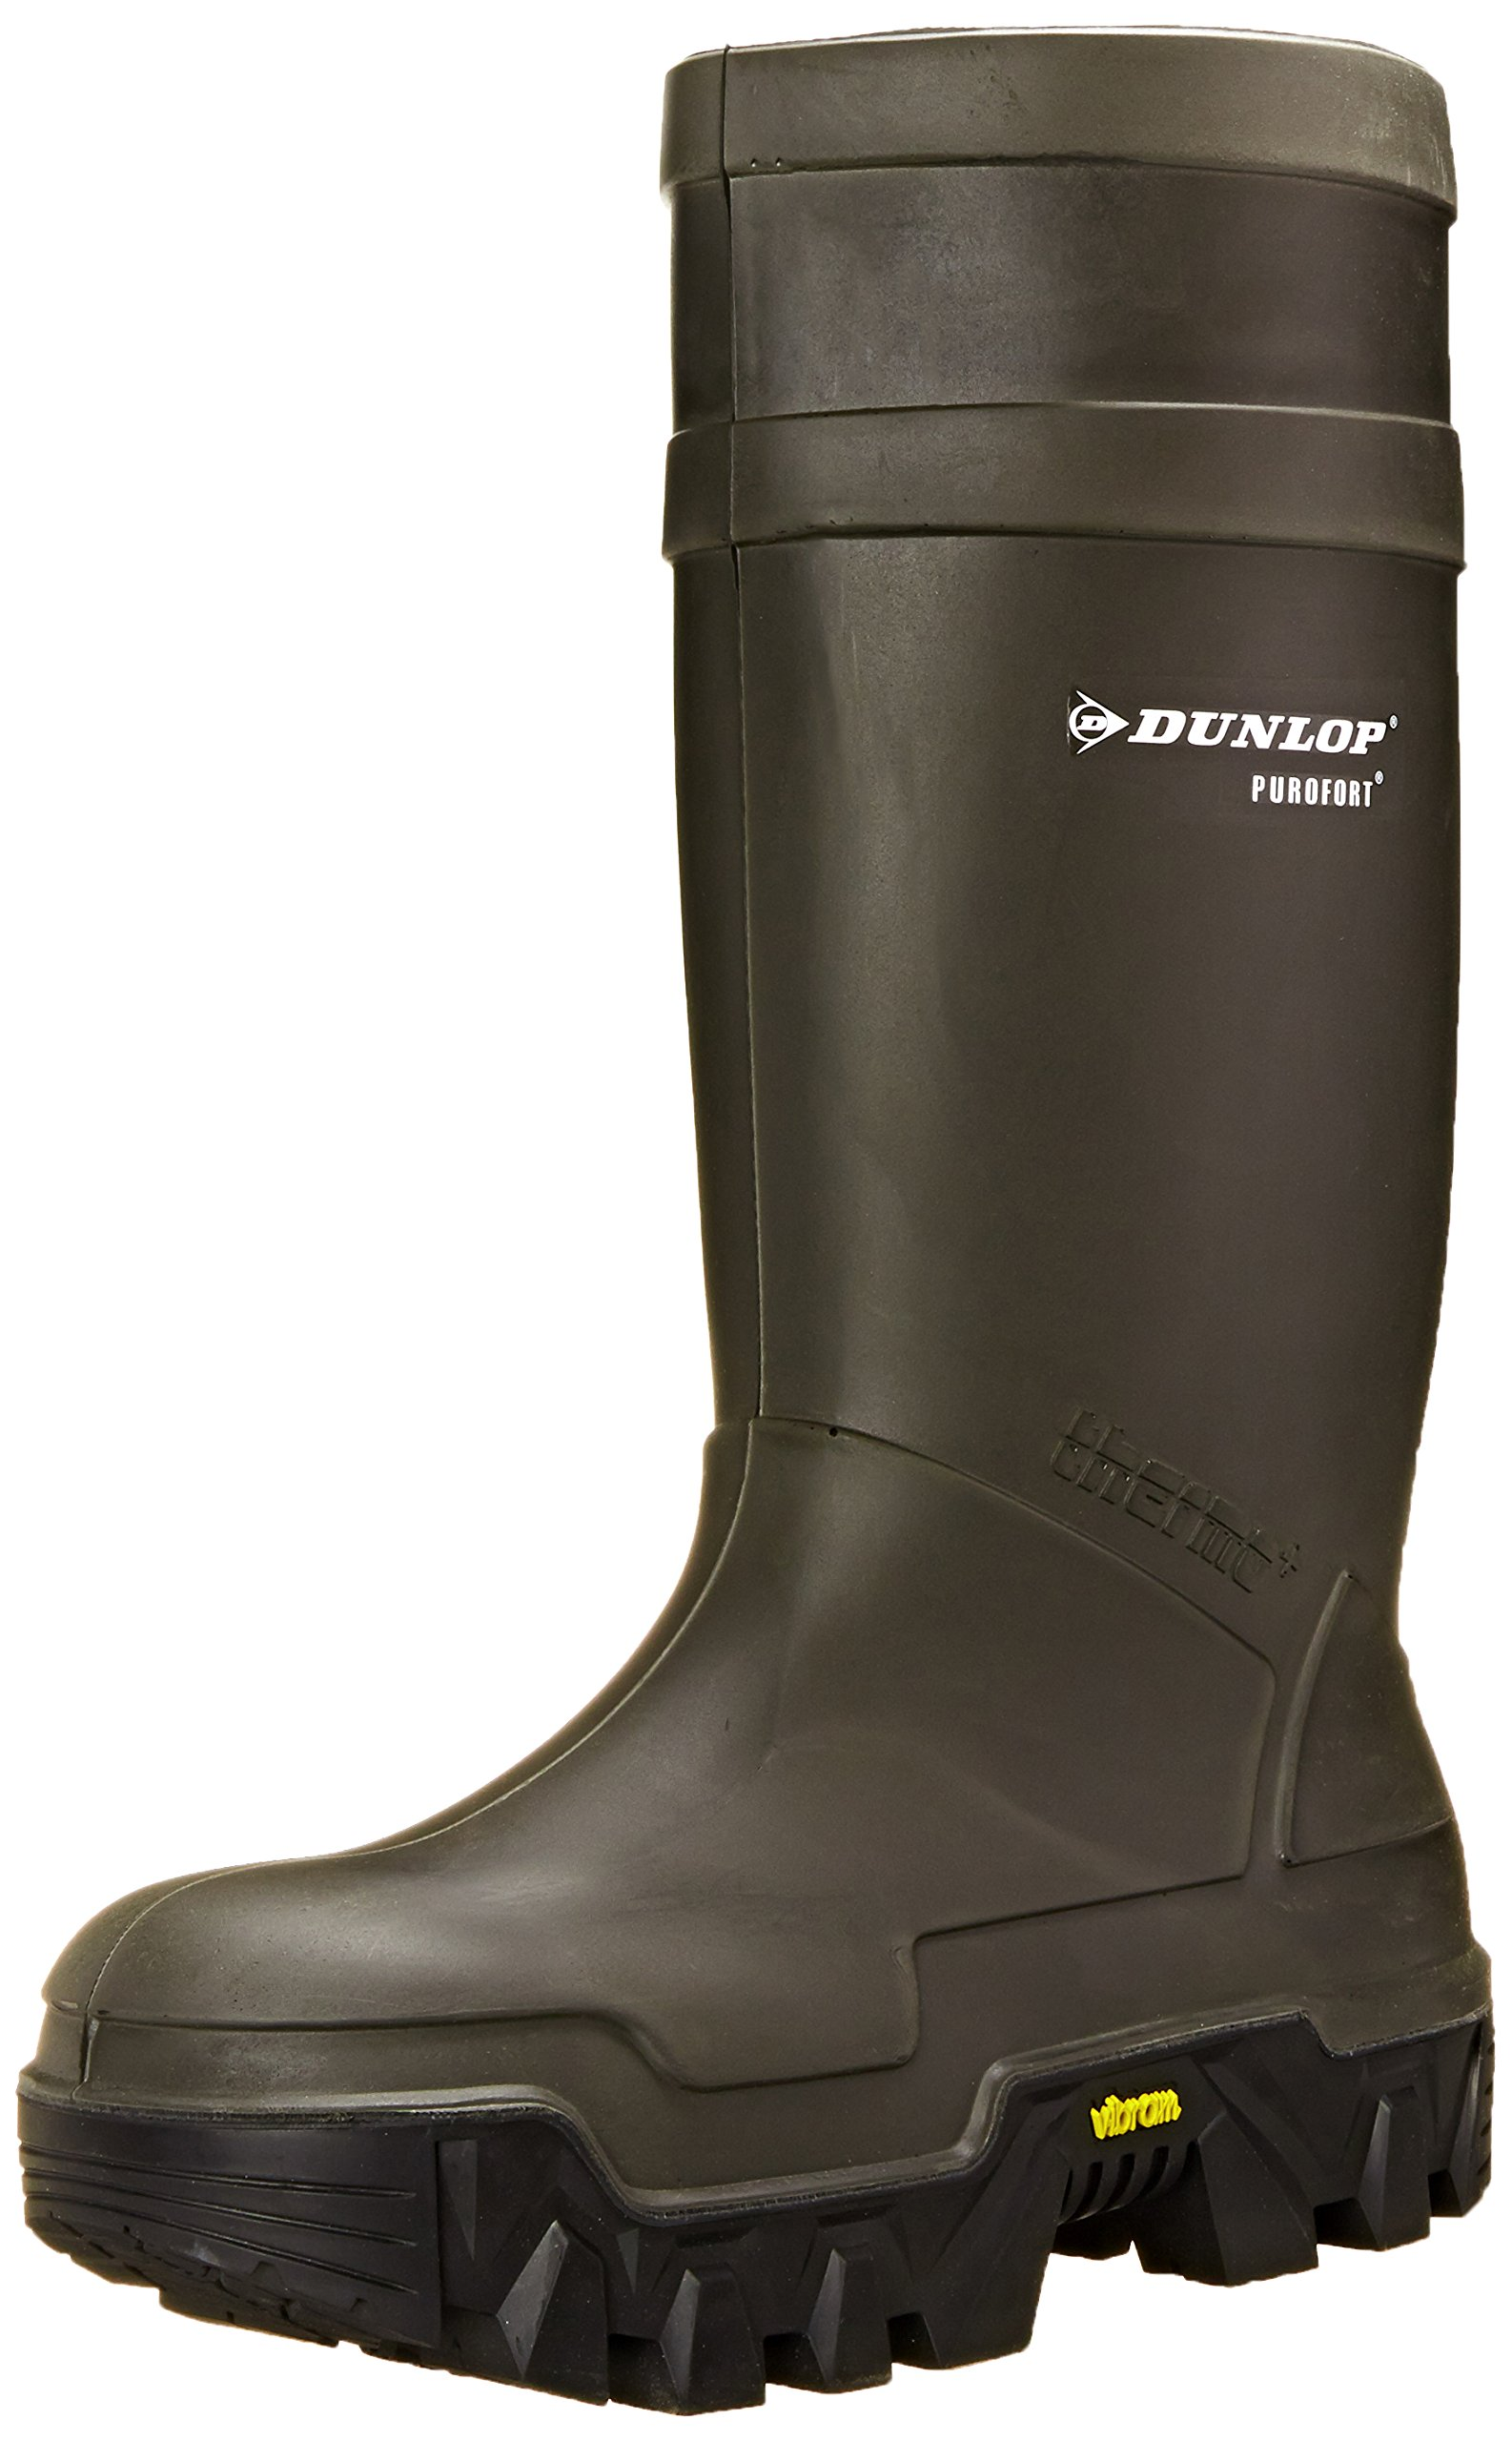 Dunlop E90203311 Explorer Thermo Full Safety Boots with Slip-Resistant Vibram Rubber Sole and Steel Toe, 100% Waterproof Purofort Material, Lightweight and Durable Protective Footwear, Size 11 by Dunlop Protective Footwear